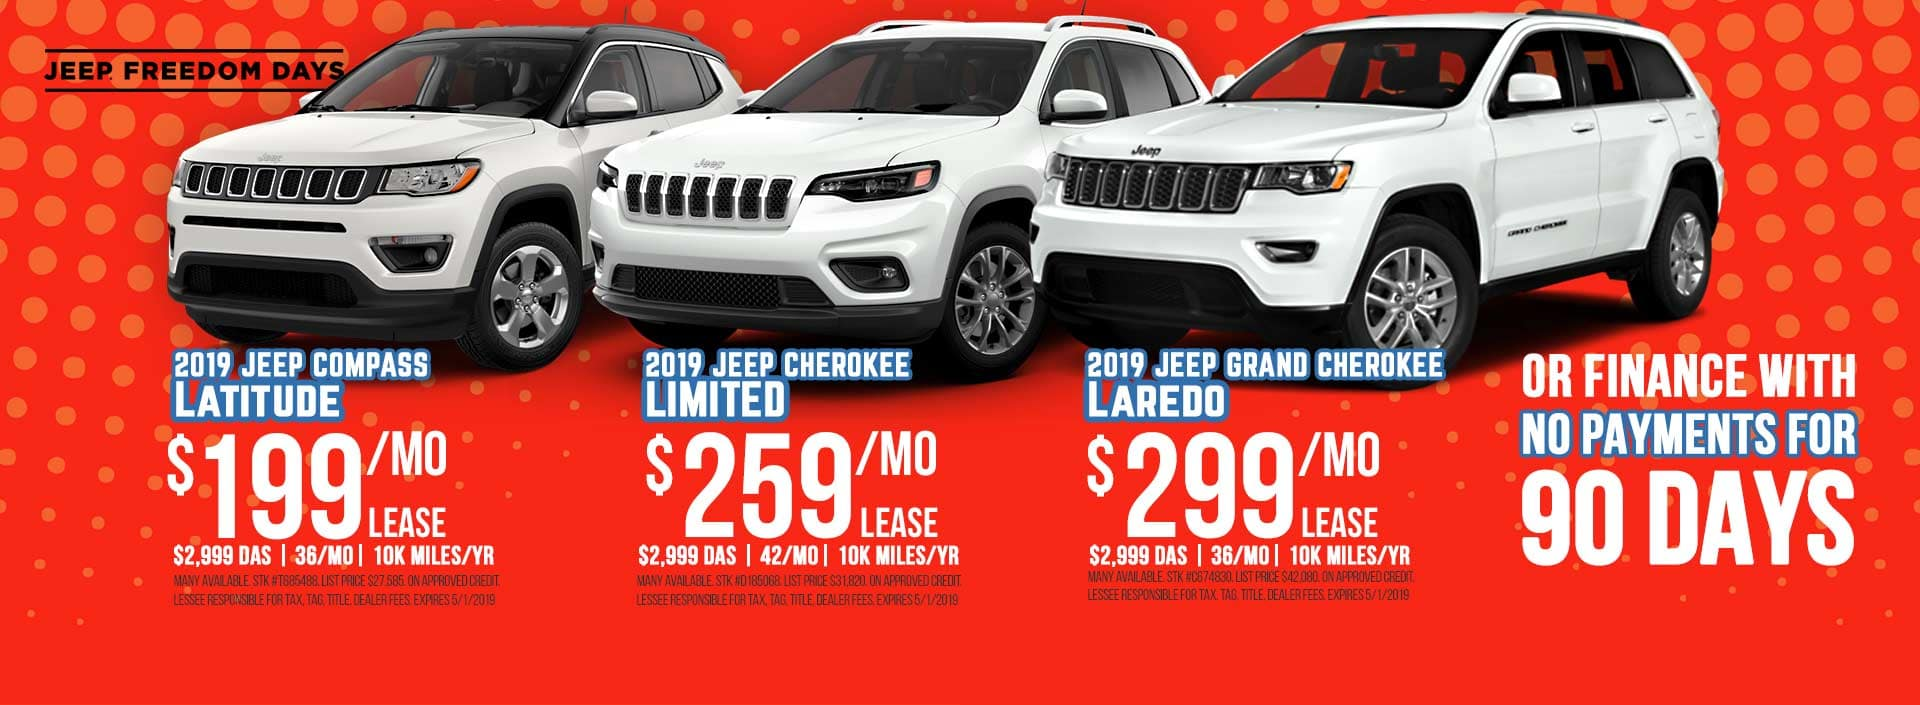 Jeep Compass Jeep Cherokee Jeep Grand Cherokee